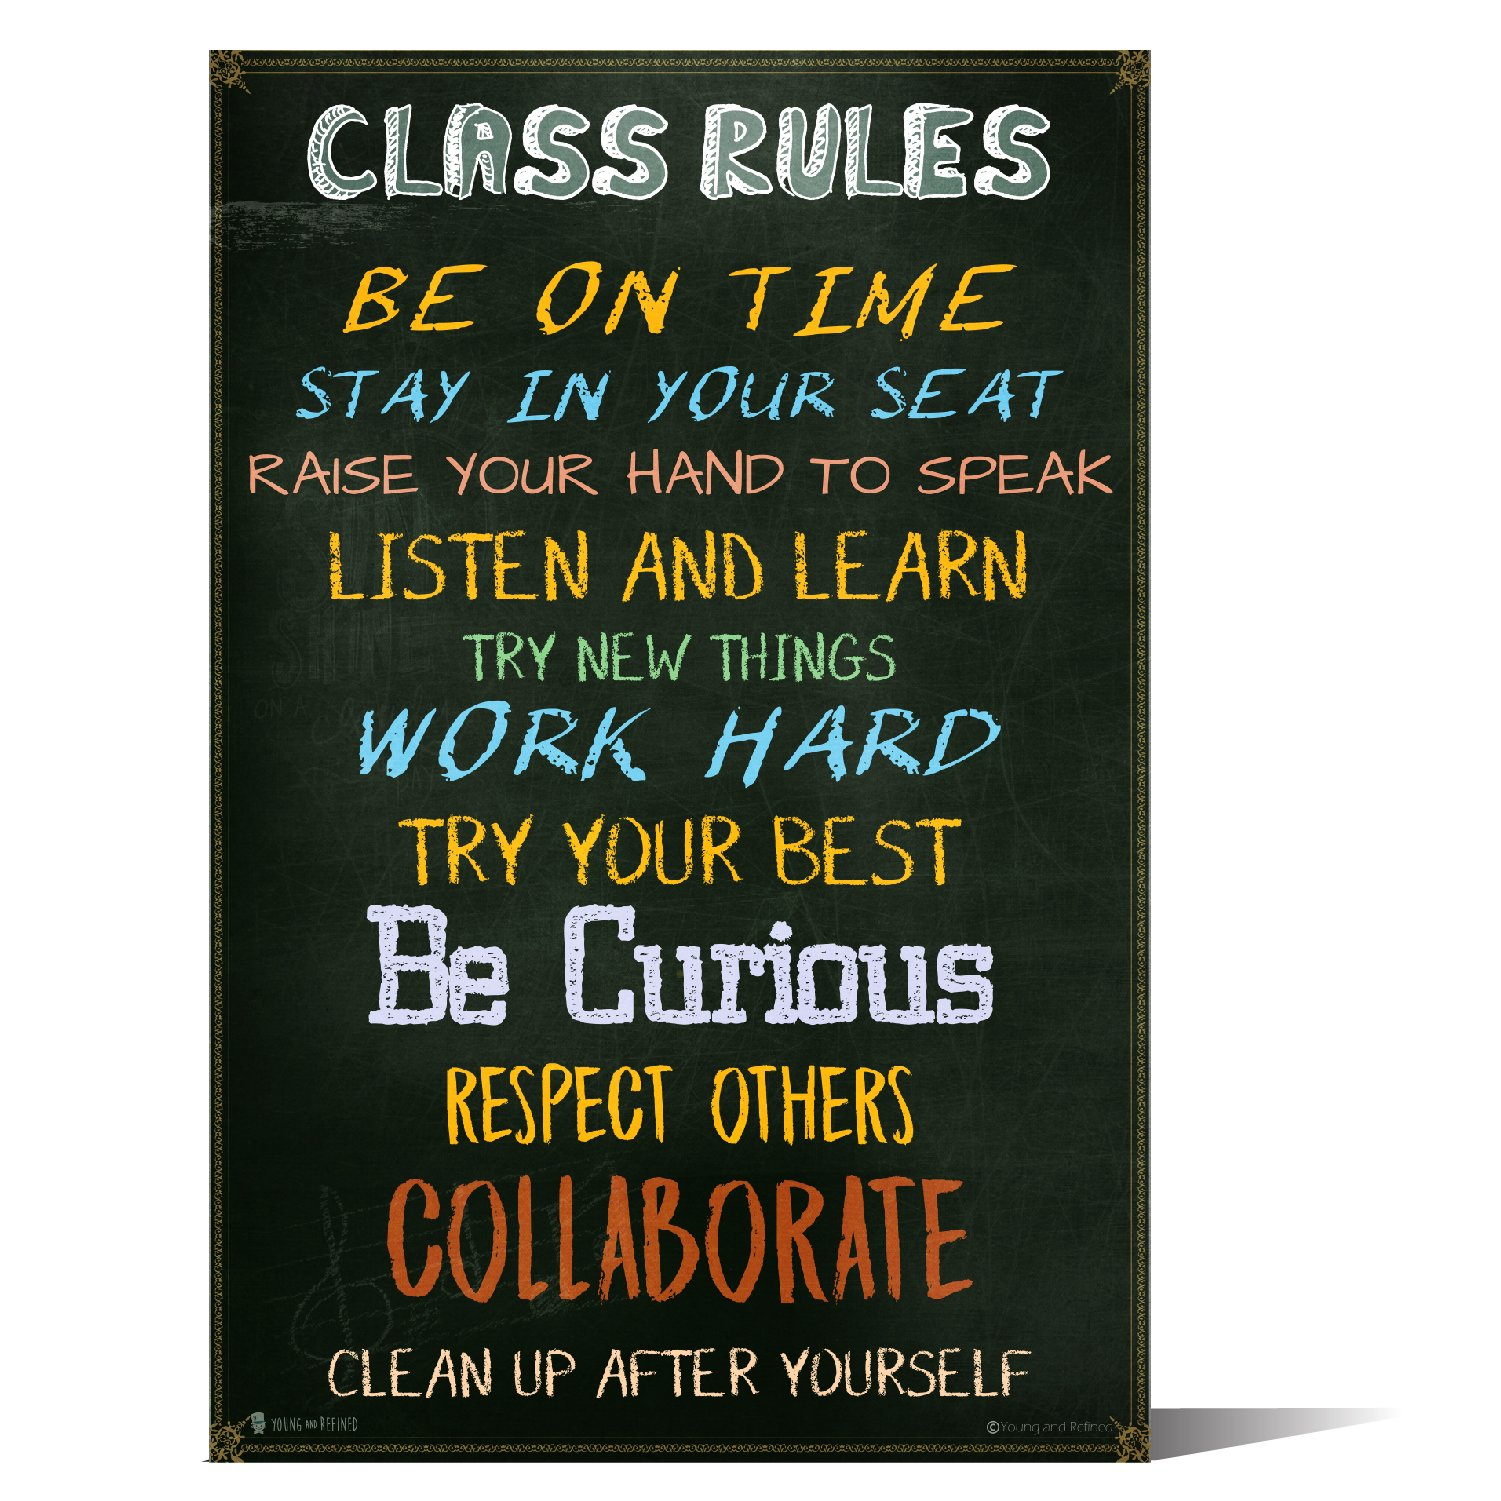 Classroom Rules sign chart LAMINATED EXTRA LARGE by Teachers for students learning in school study hall (20x30)